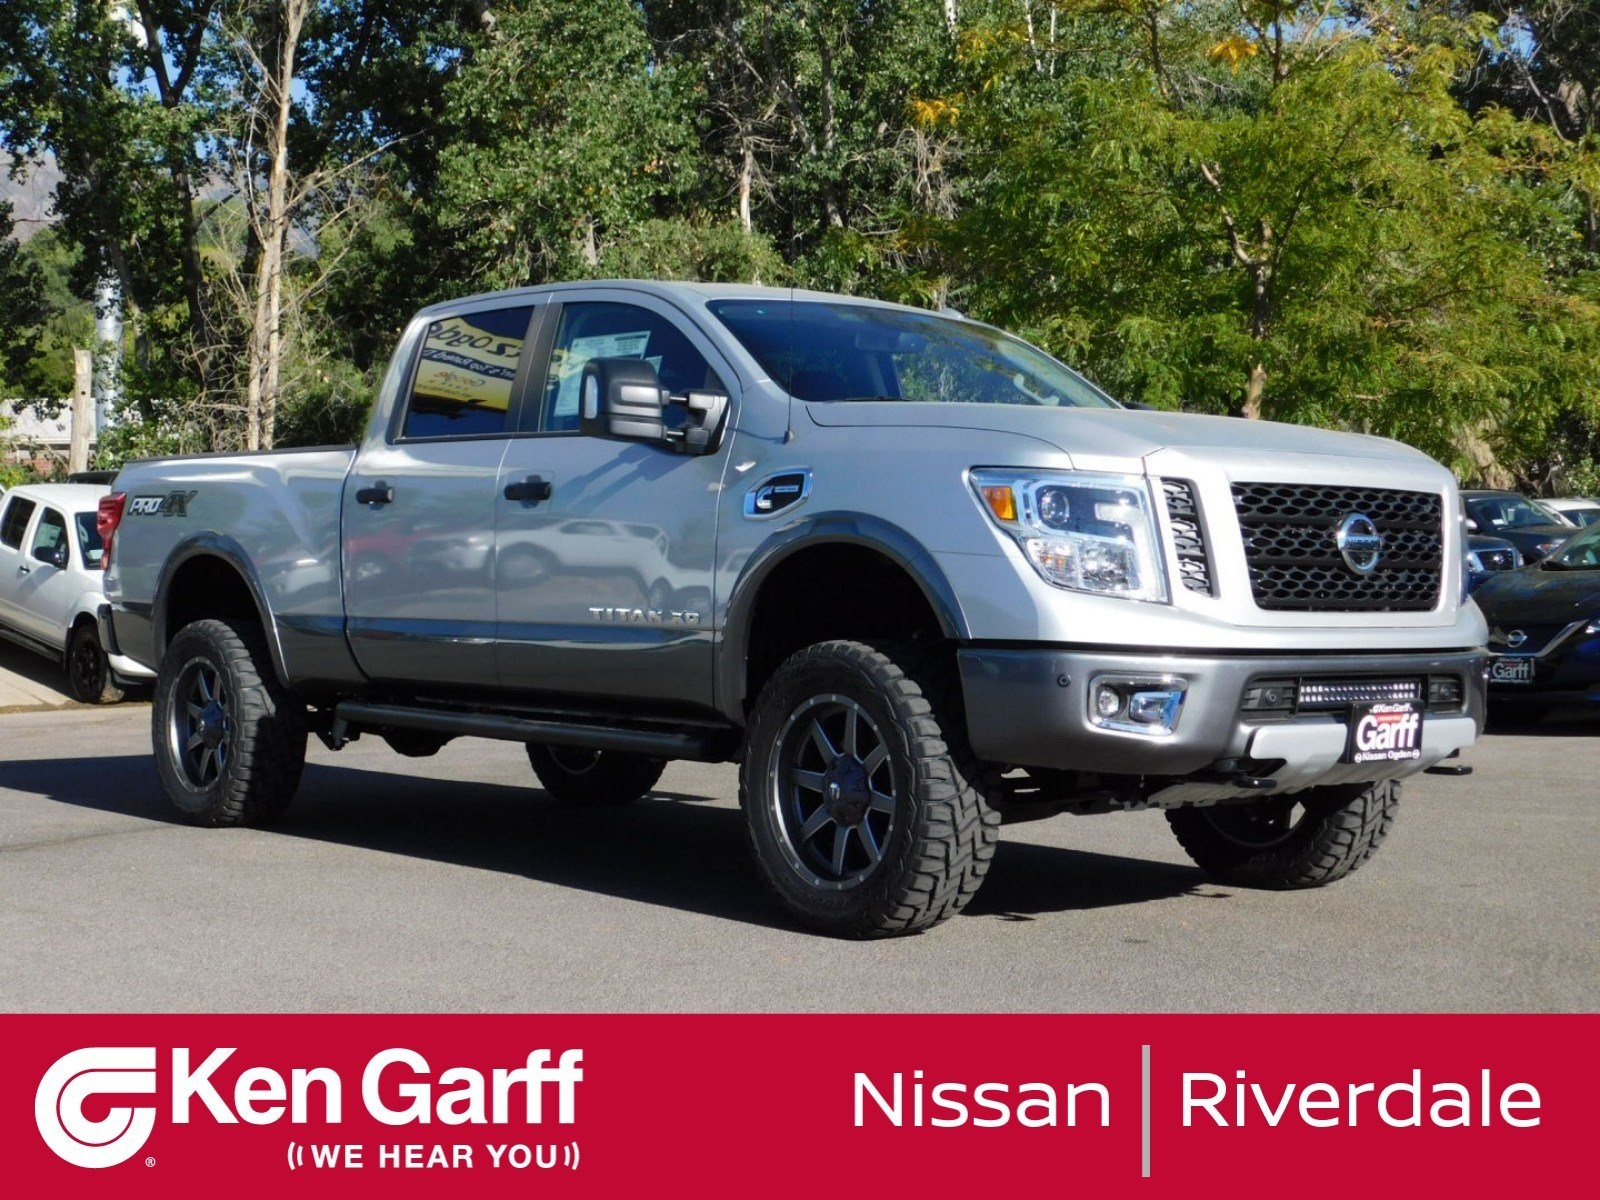 2006 Nissan Titan Parts Diagram New 2018 Nissan Titan Xd Pro 4x Crew Cab Pickup In Riverdale Of 2006 Nissan Titan Parts Diagram 2006 Altima Parts Diagram Wiring Diagram Database •